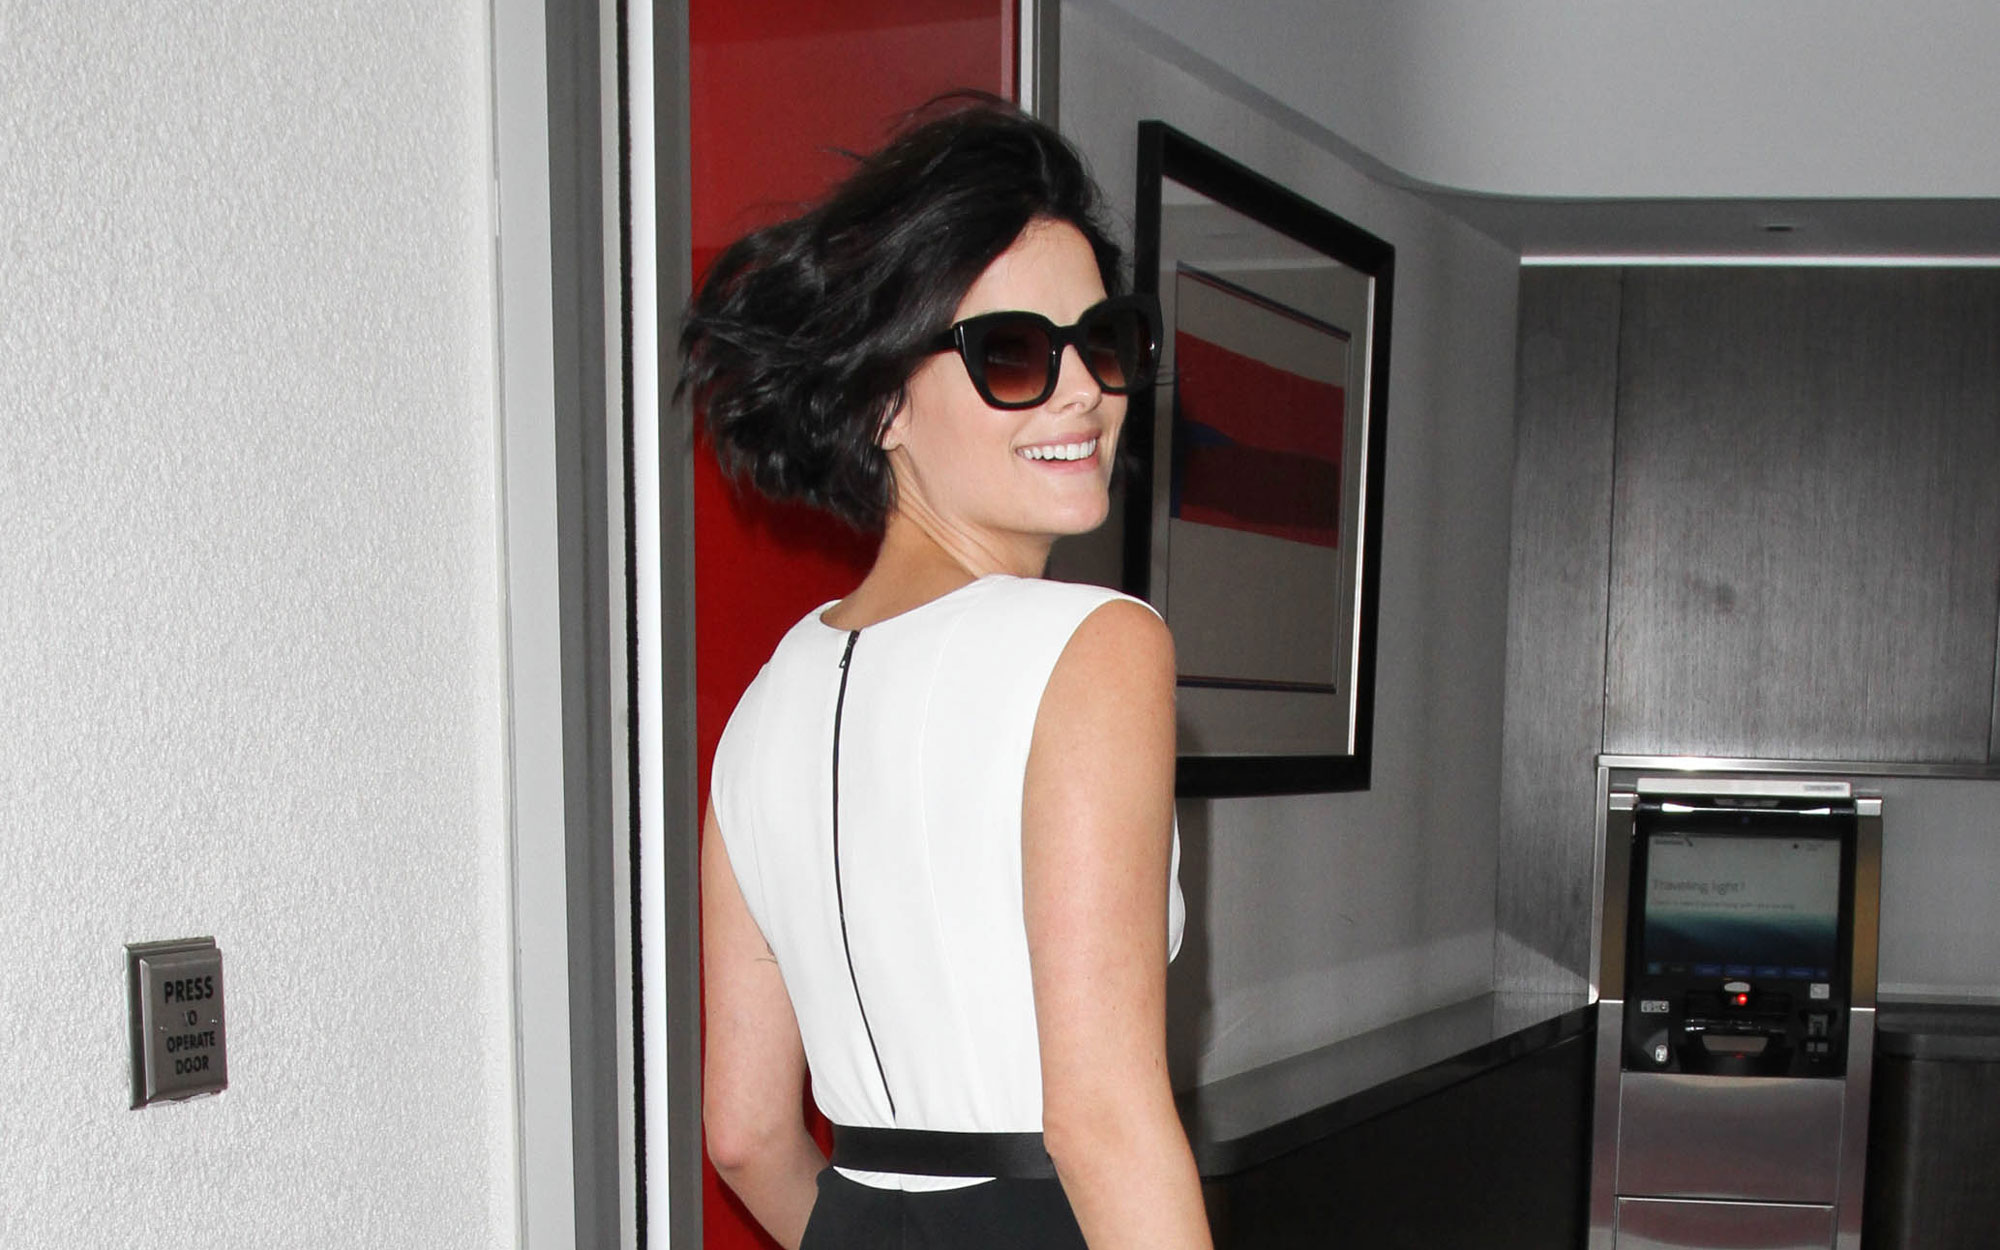 Bourbon, Chap Stick and Martial Arts: How Jaimie Alexander Travels